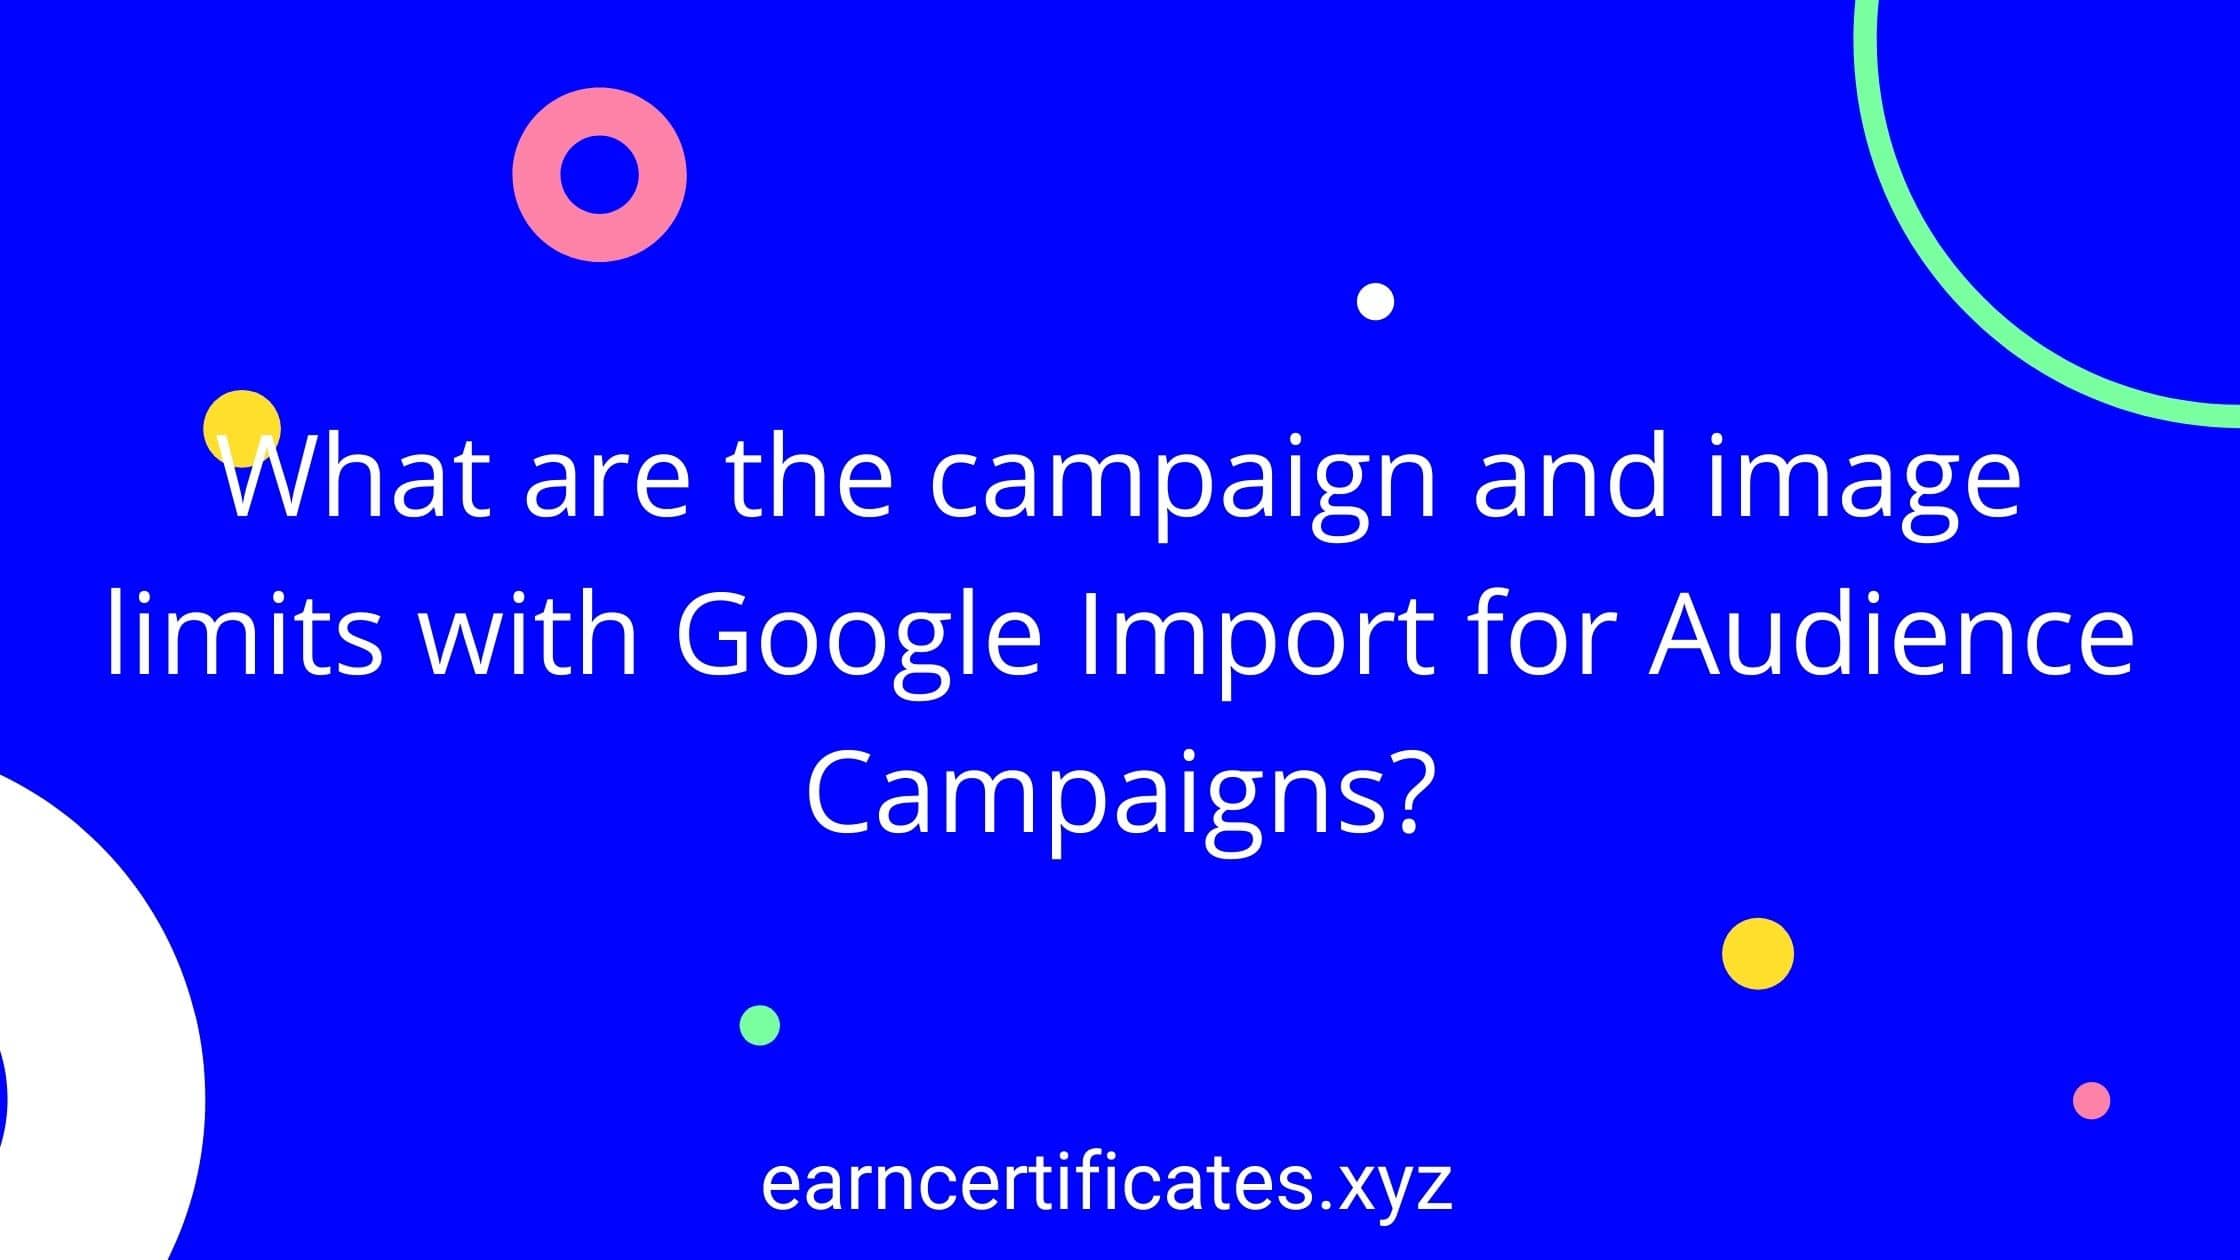 What are the campaign and image limits with Google Import for Audience Campaigns?